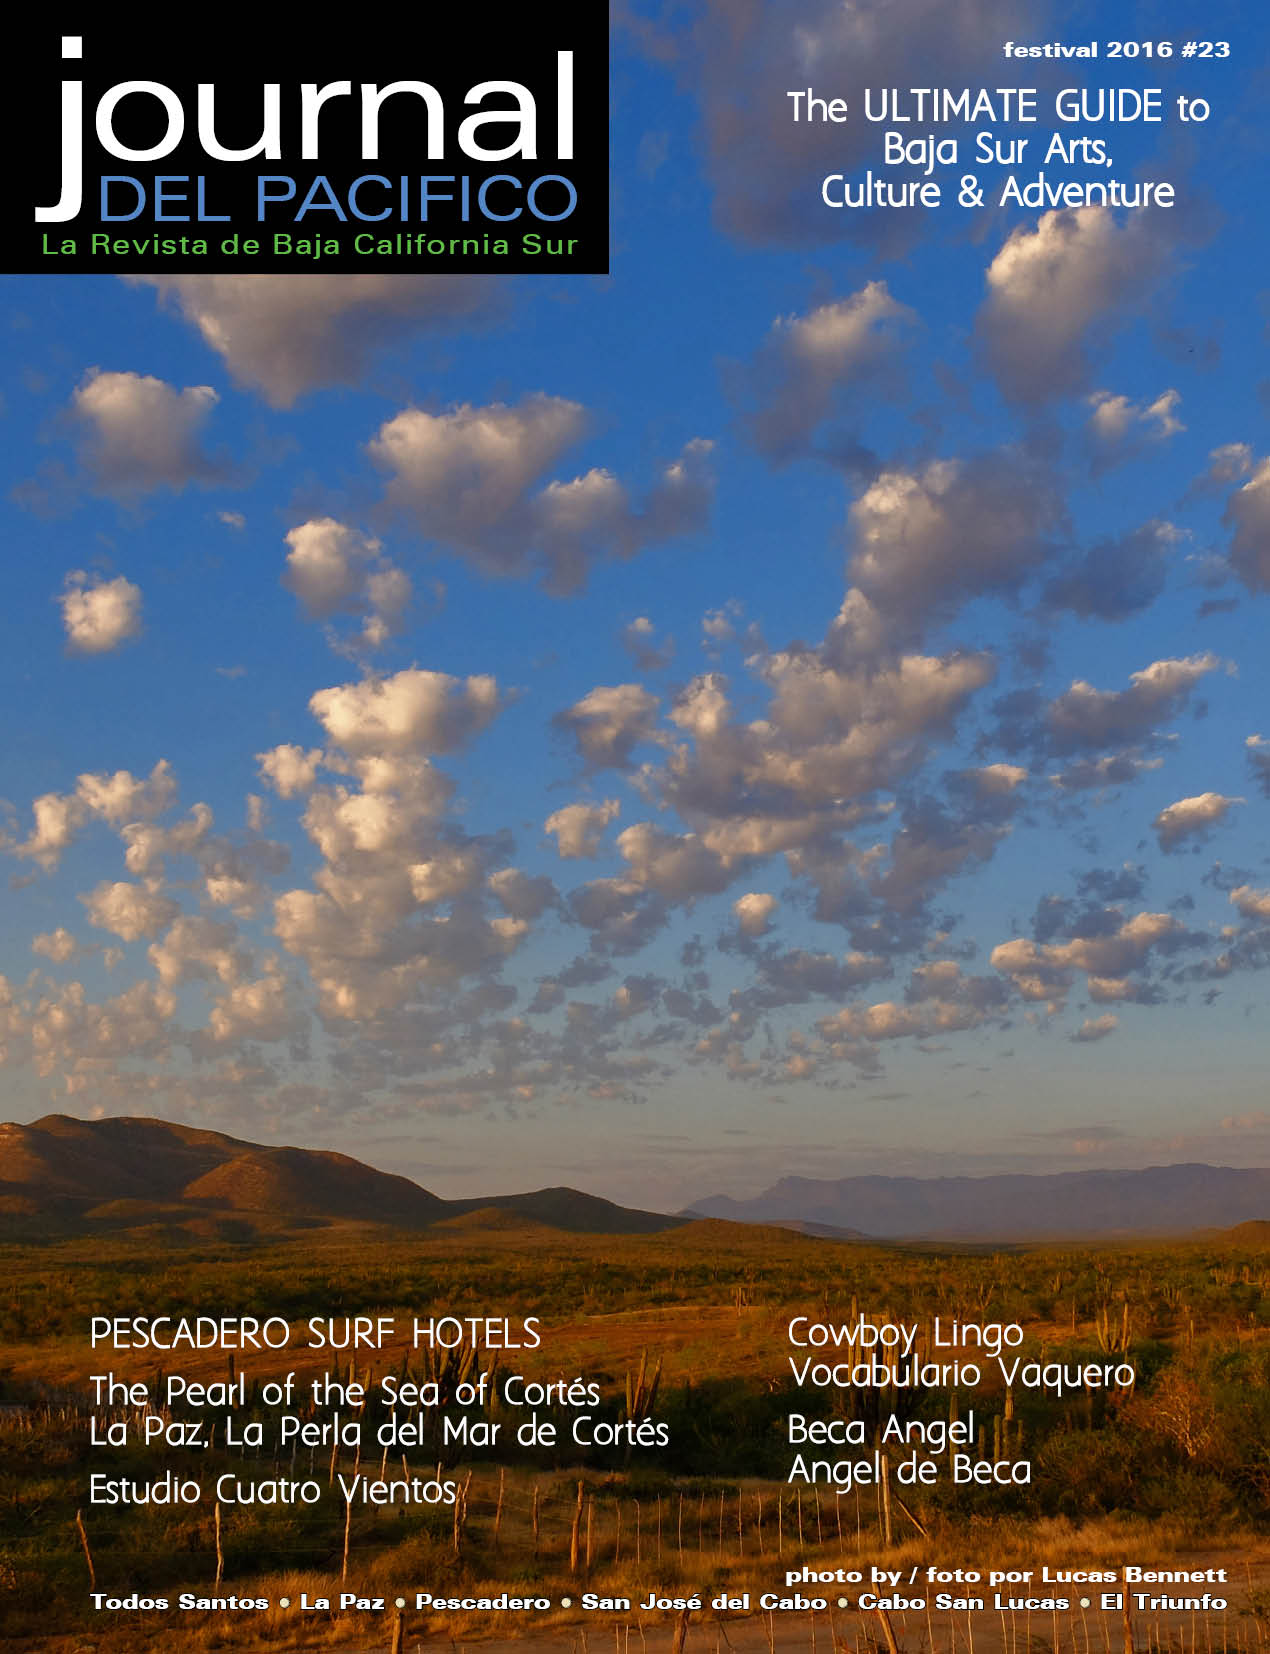 Festival 2016 Issue of Journal del Pacifico